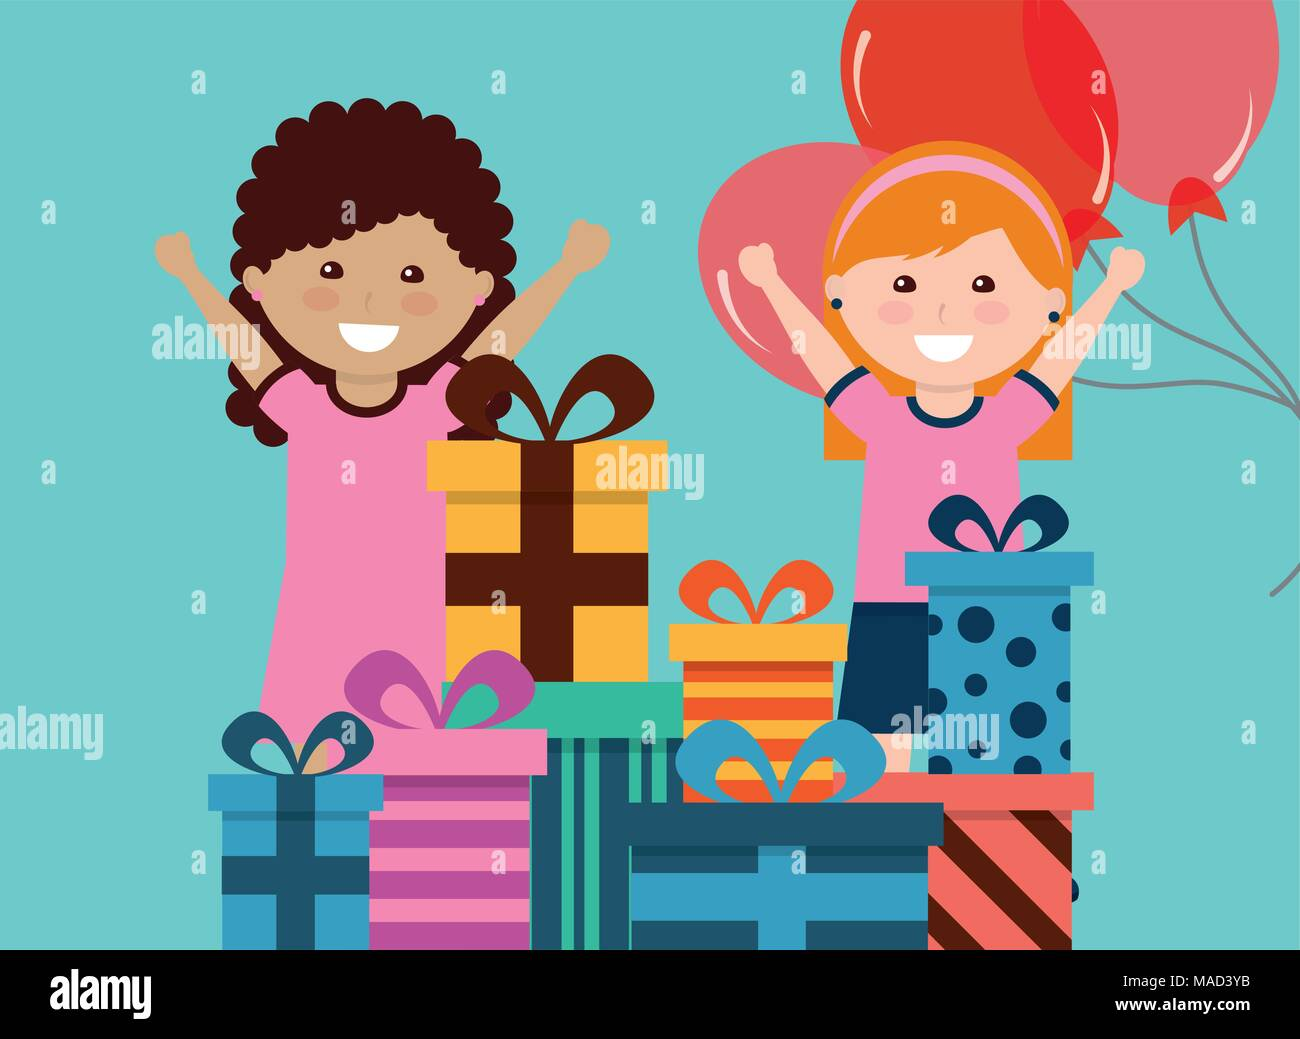 Cute Two Girl With Many Gift Boxes And Balloons Kids Happy